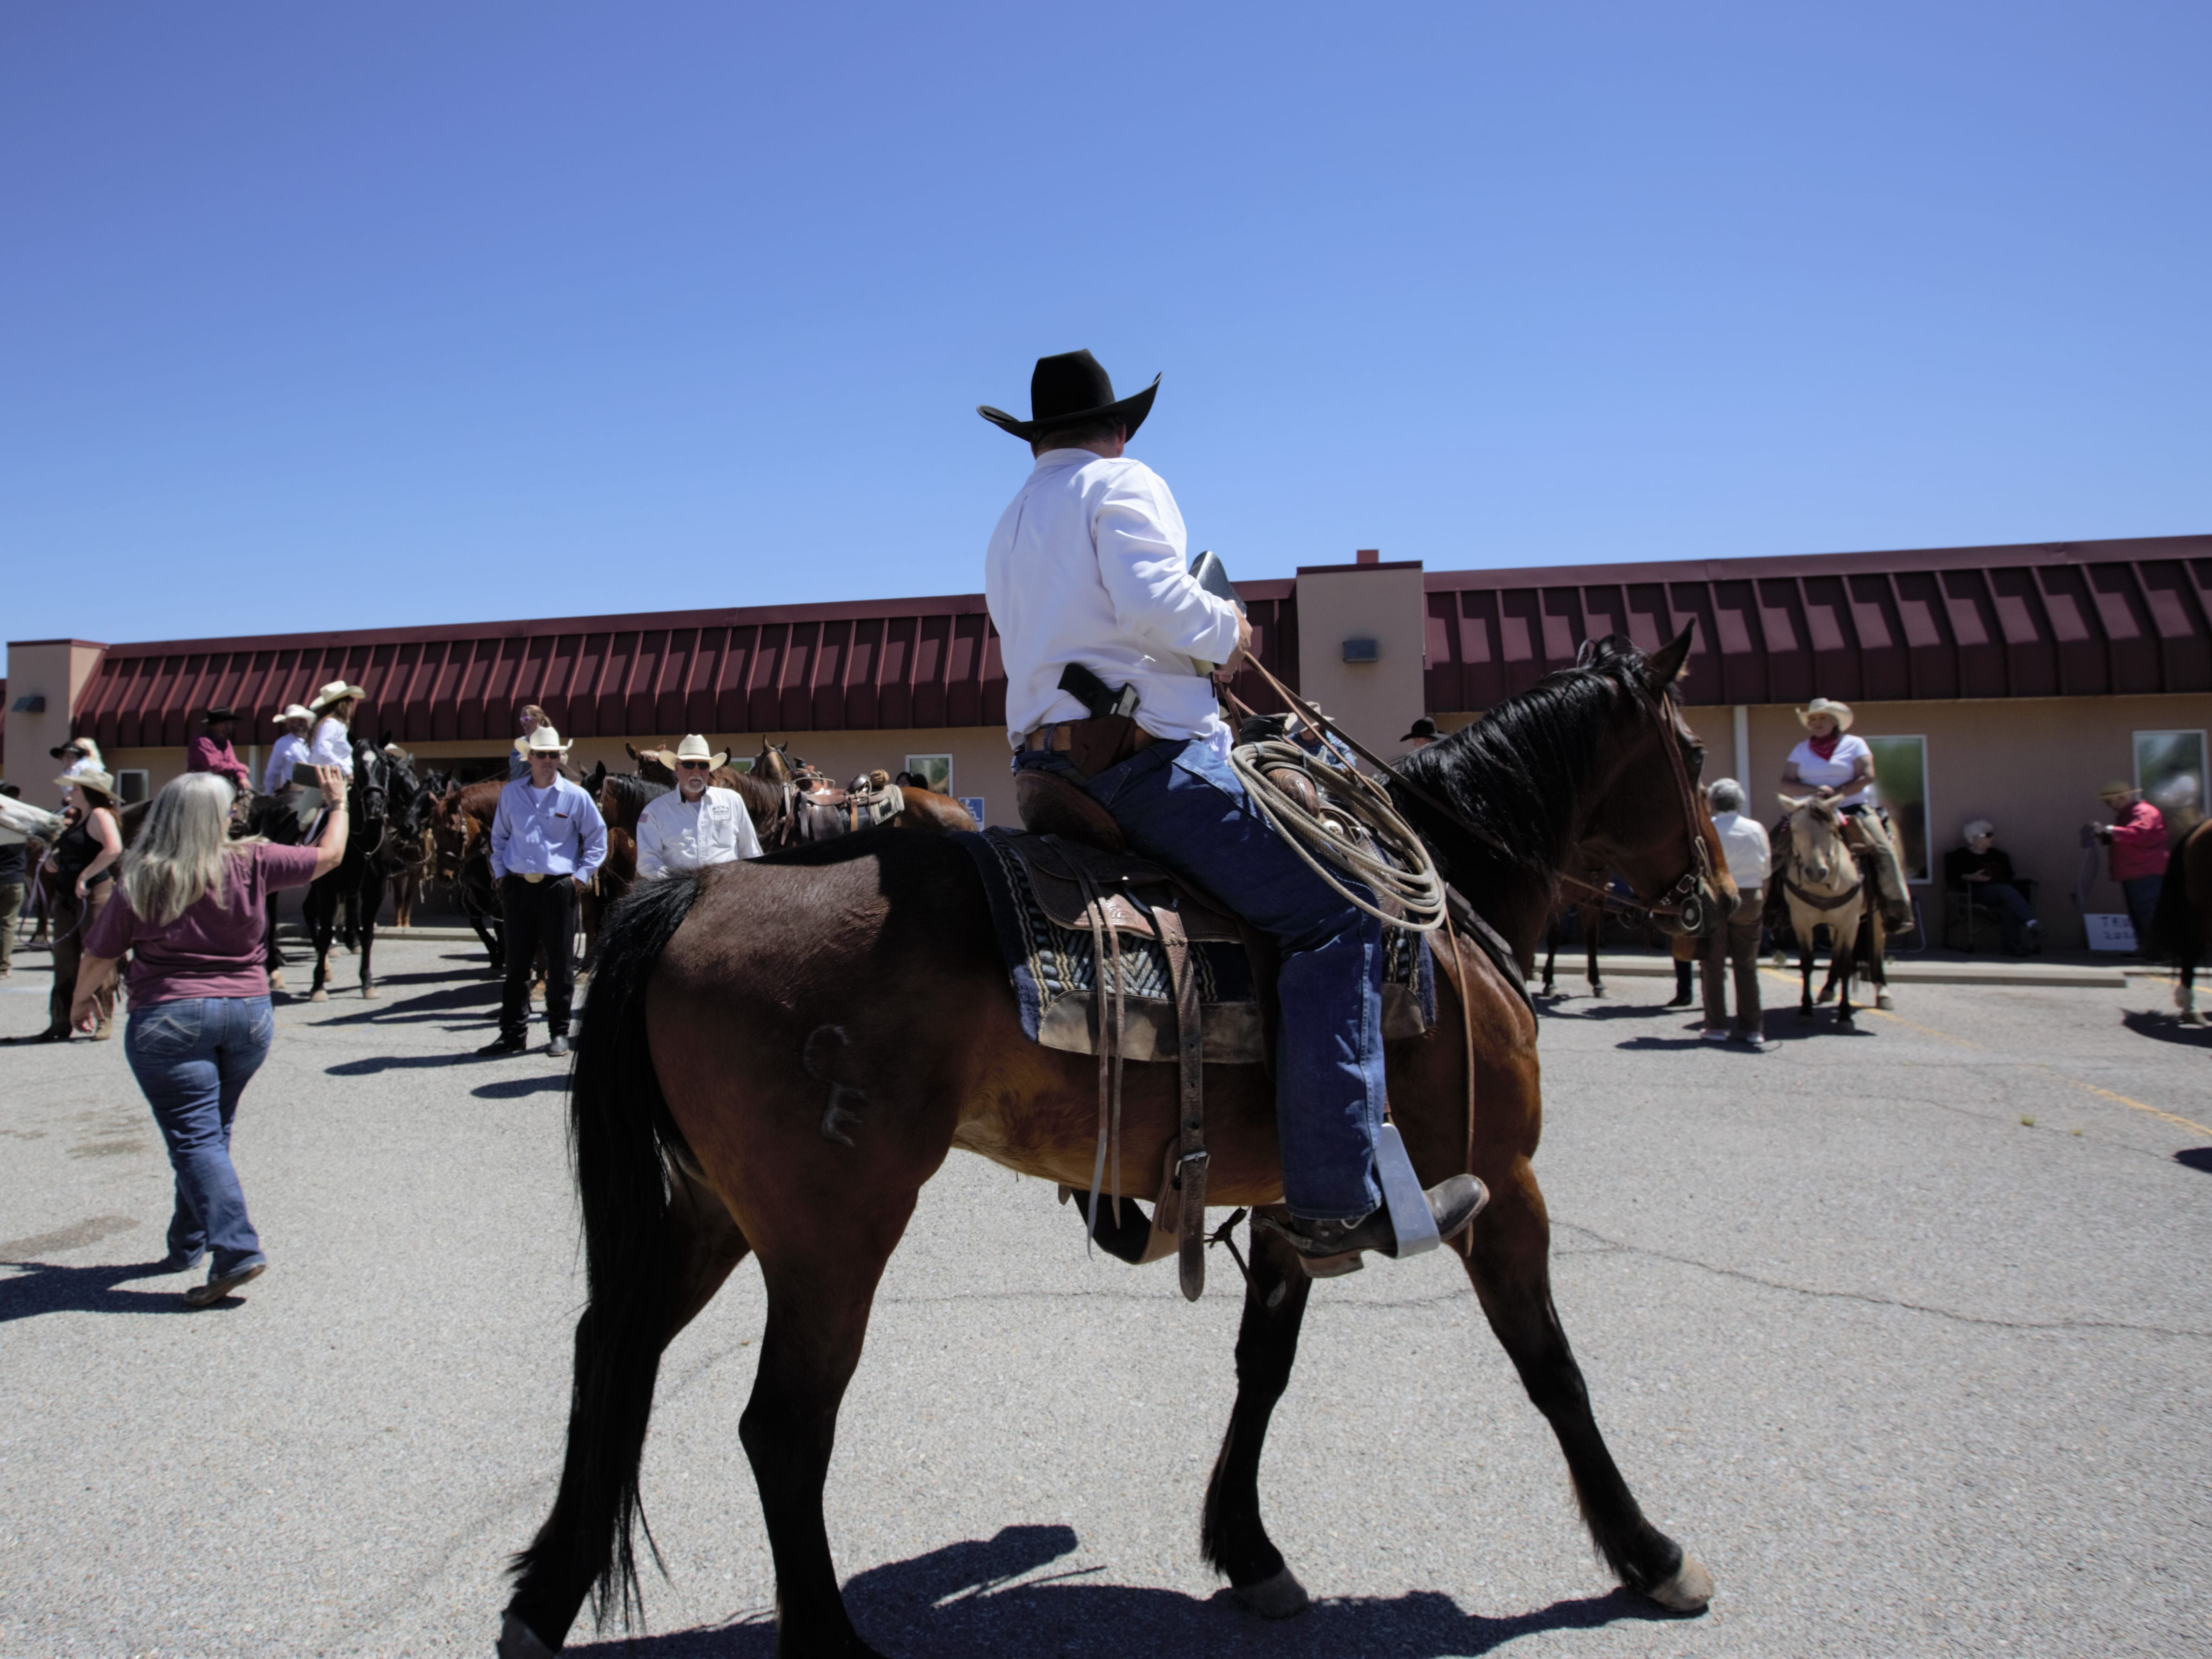 Several participants in a Cowboys for Trump ride and rally on Thursday, April 25, 2019 openly carried firearms. Several attendees said they were there to oppose gun restrictions, among other issues.